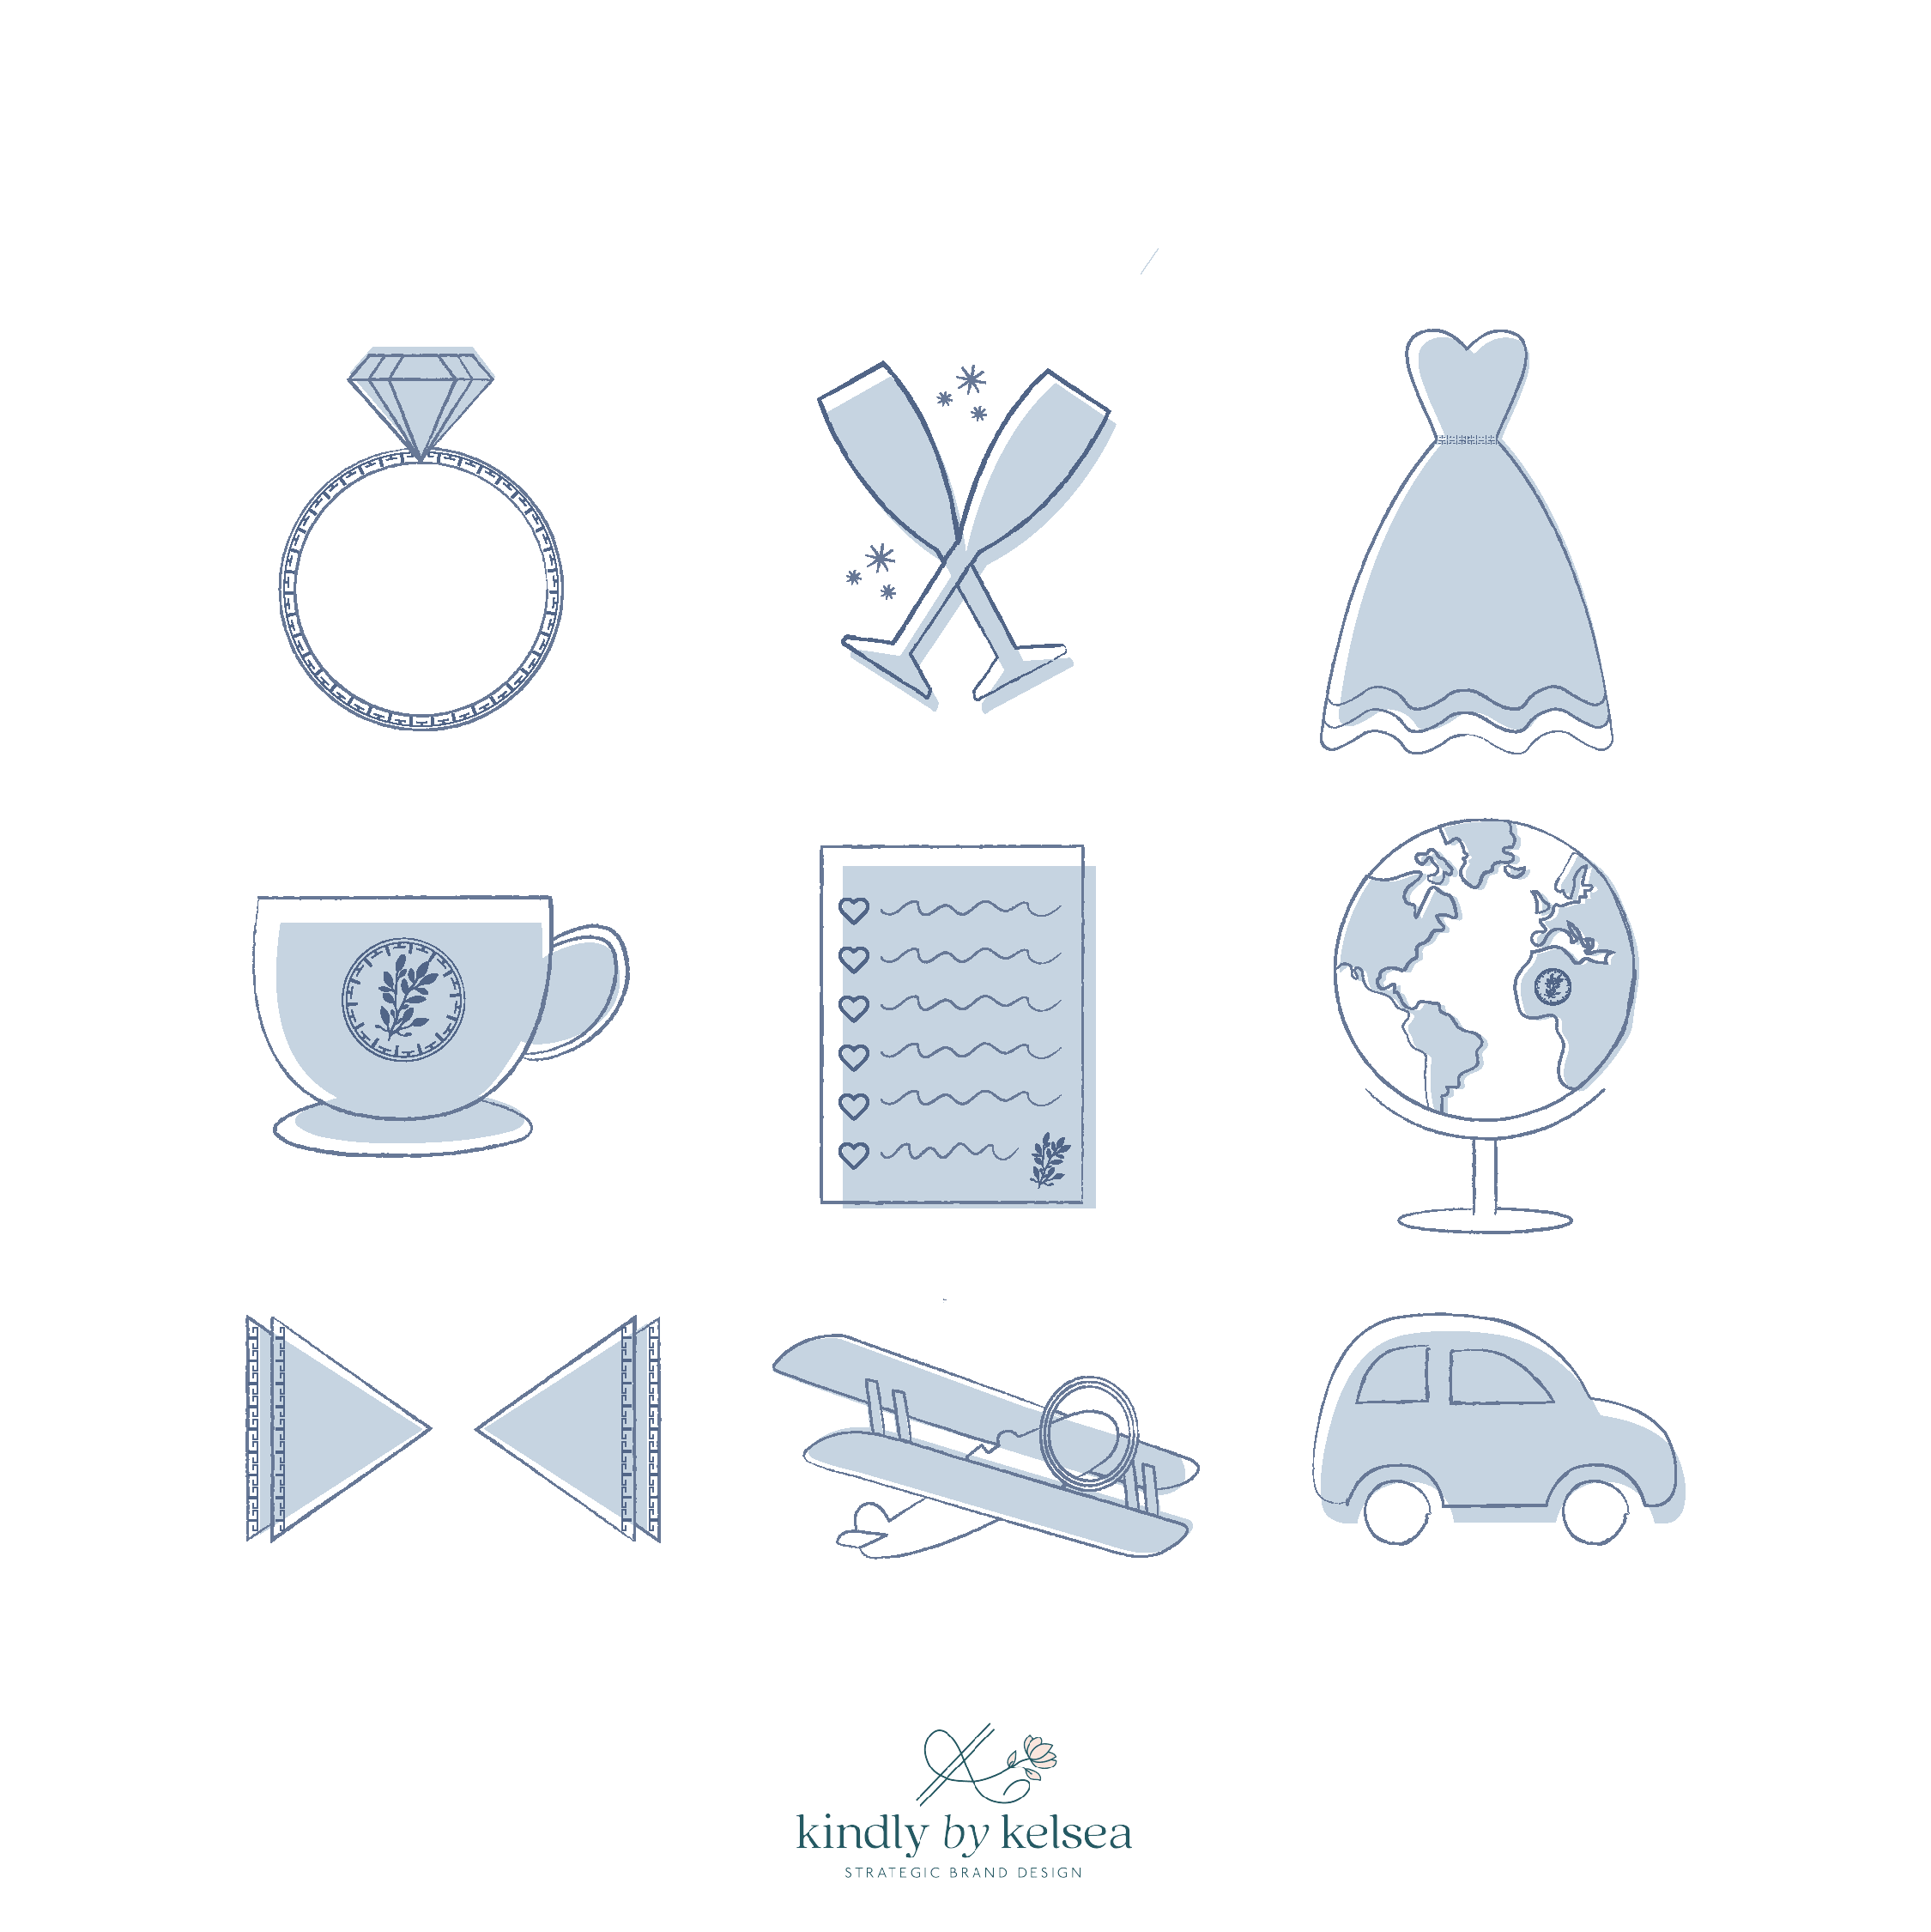 Kati Hewitt Photography Houston Wedding Photographer Logo and Icon Design by Kindly by Kelsea